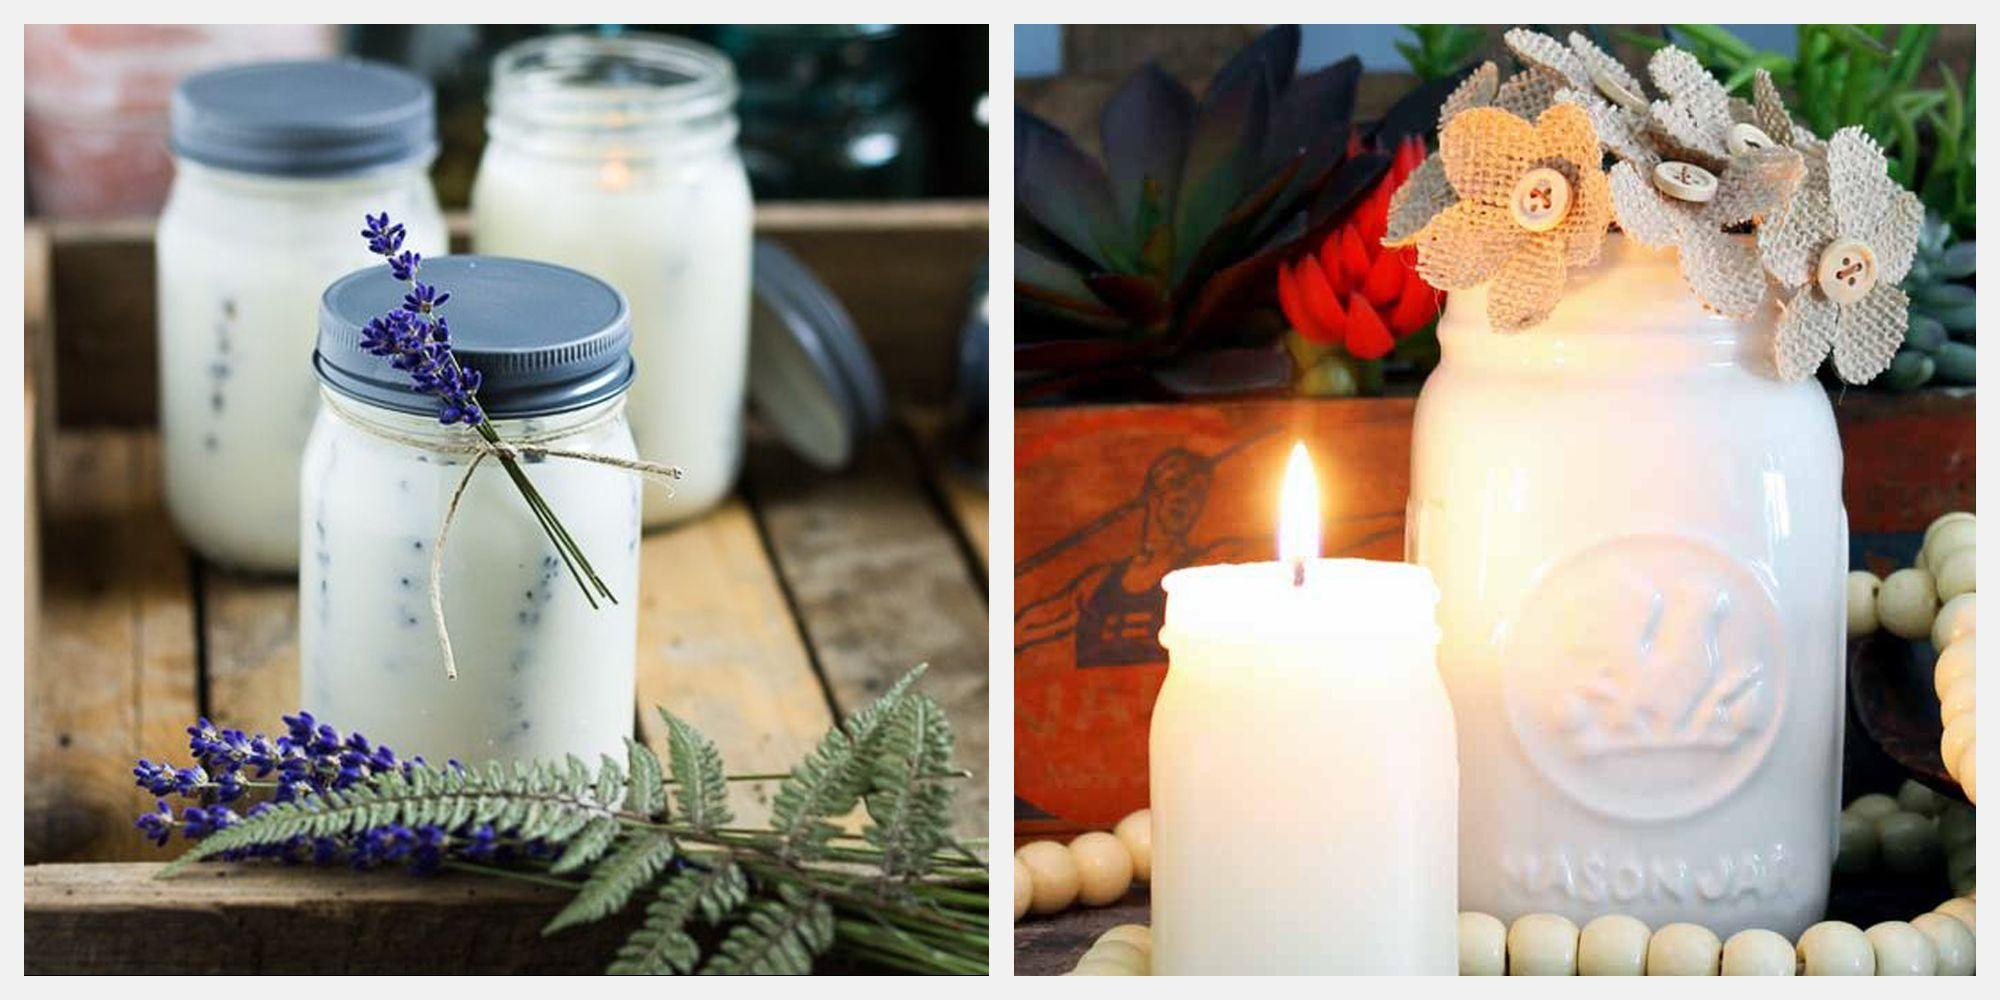 """<p>Originating as a container for canning and preserving foods, the Mason Jar has had many stylish evolutions. From Mason Jar sconces to Mason Jar iced coffee cups, there's no shortage of great inspo in the DIY world and beyond.</p><p>Whether you're looking to get crafty—or simply inspired—these Mason Jar <a href=""""https://www.elledecor.com/shopping/g2562/the-15-best-candles-to-burn-in-your-home-this-summer/"""" rel=""""nofollow noopener"""" target=""""_blank"""" data-ylk=""""slk:candles"""" class=""""link rapid-noclick-resp"""">candles</a> are a great place to start. From botanical-infused to gingerbread soy, get creative and cozy with some attractive aromas. </p><p>Read on for 10 Mason Jar candles to make (or buy) right now. </p>"""